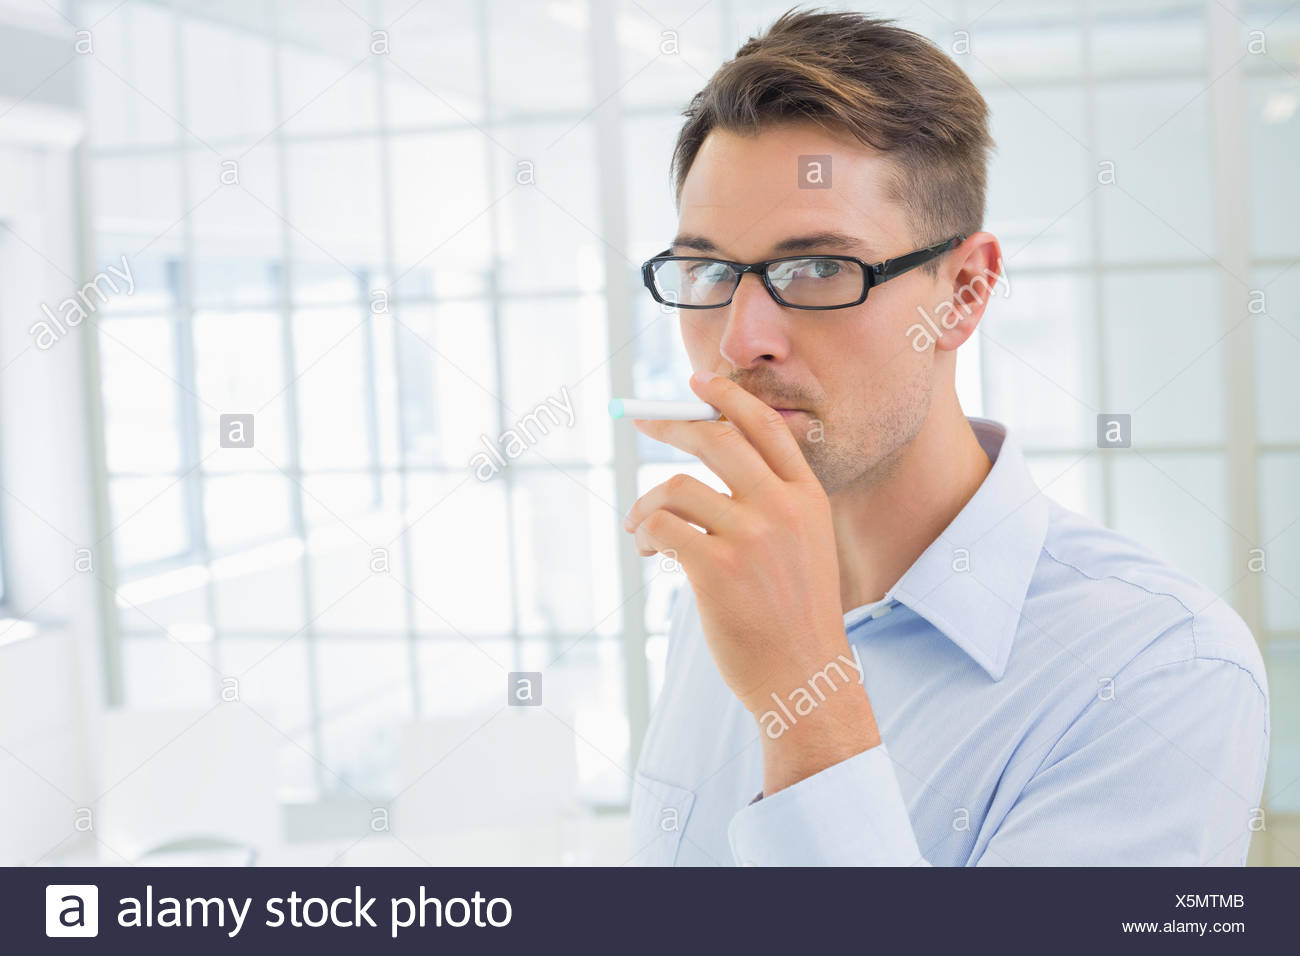 Casual businessman smoking an electronic cigarette - Stock Image